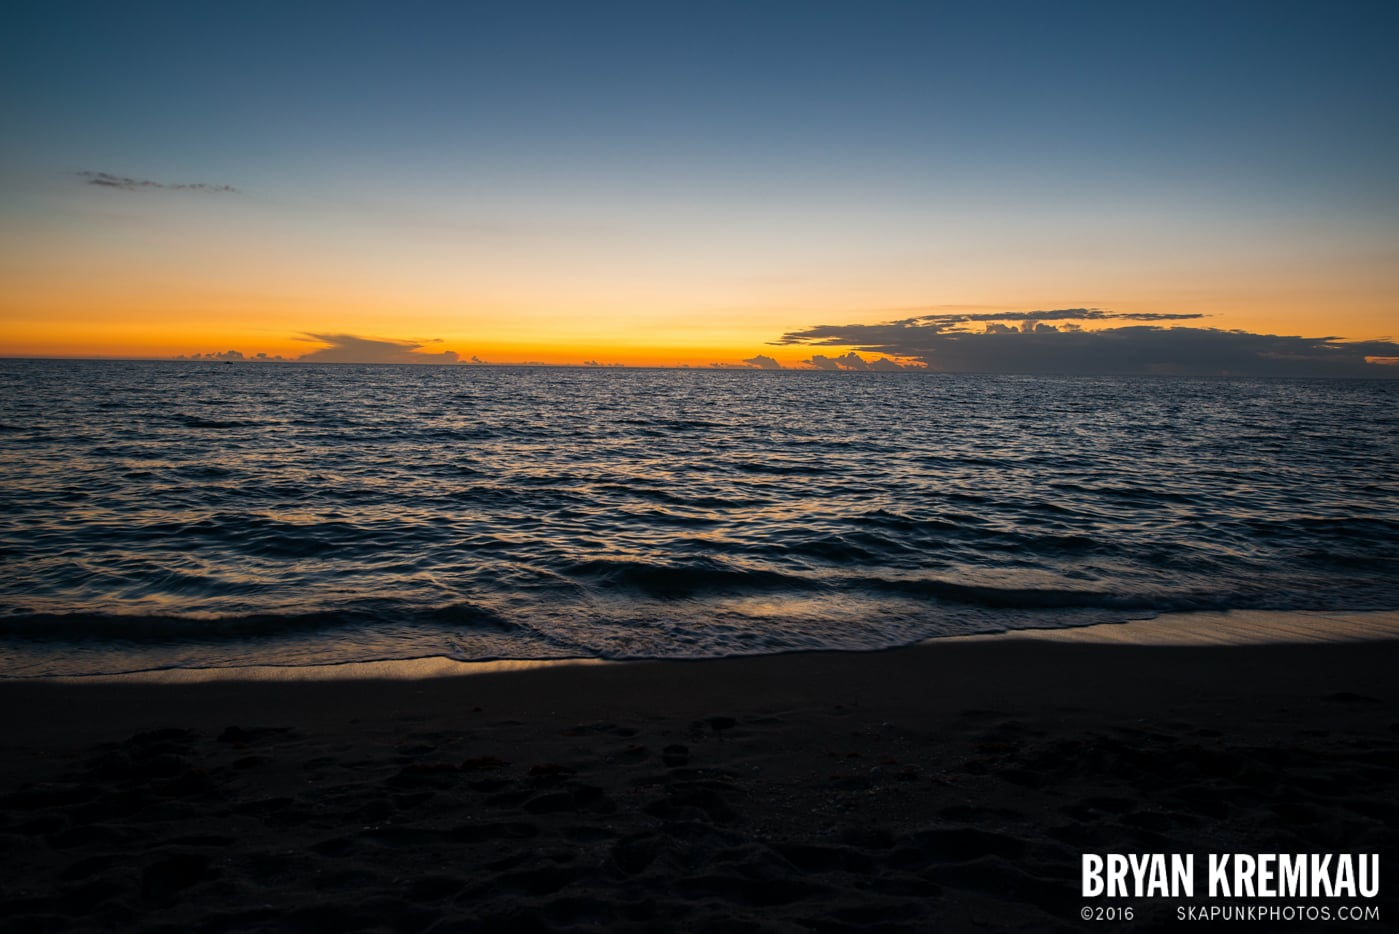 Sunsets, Astrophotography & Birds @ Venice, Florida - 10.25.14 - 11.5.14 (107)